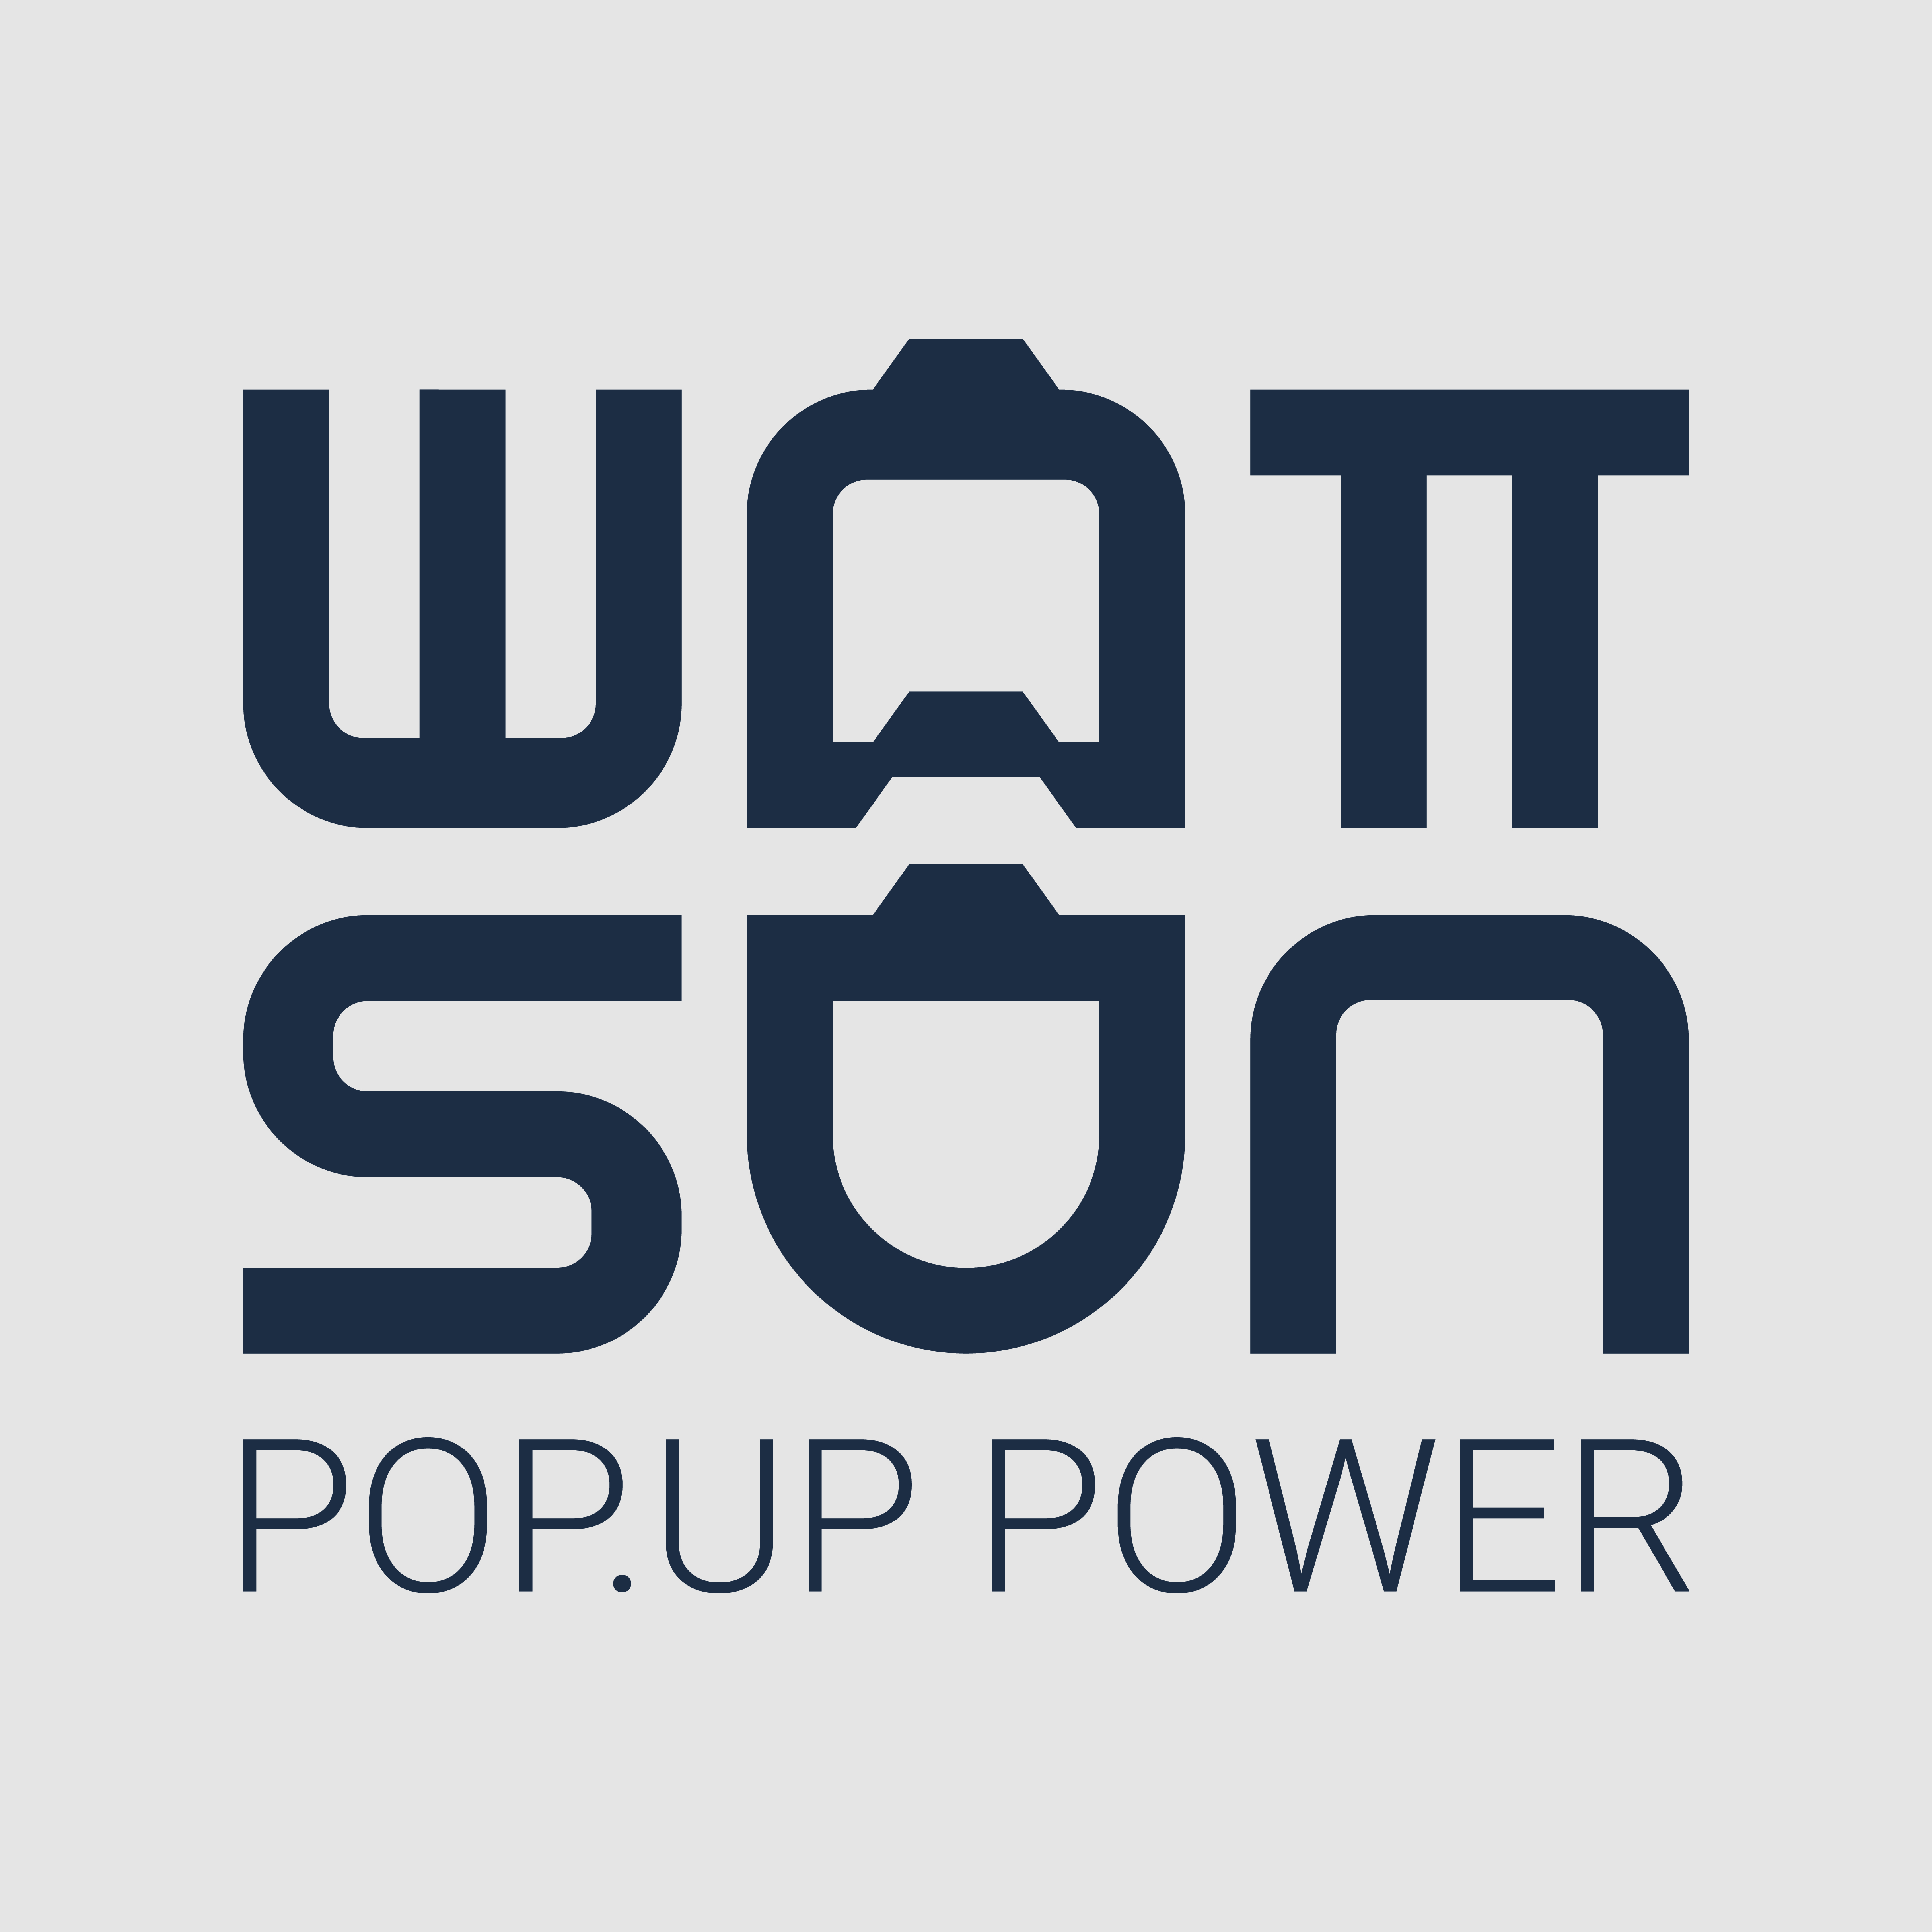 Wattsun Pop-Up Power logo